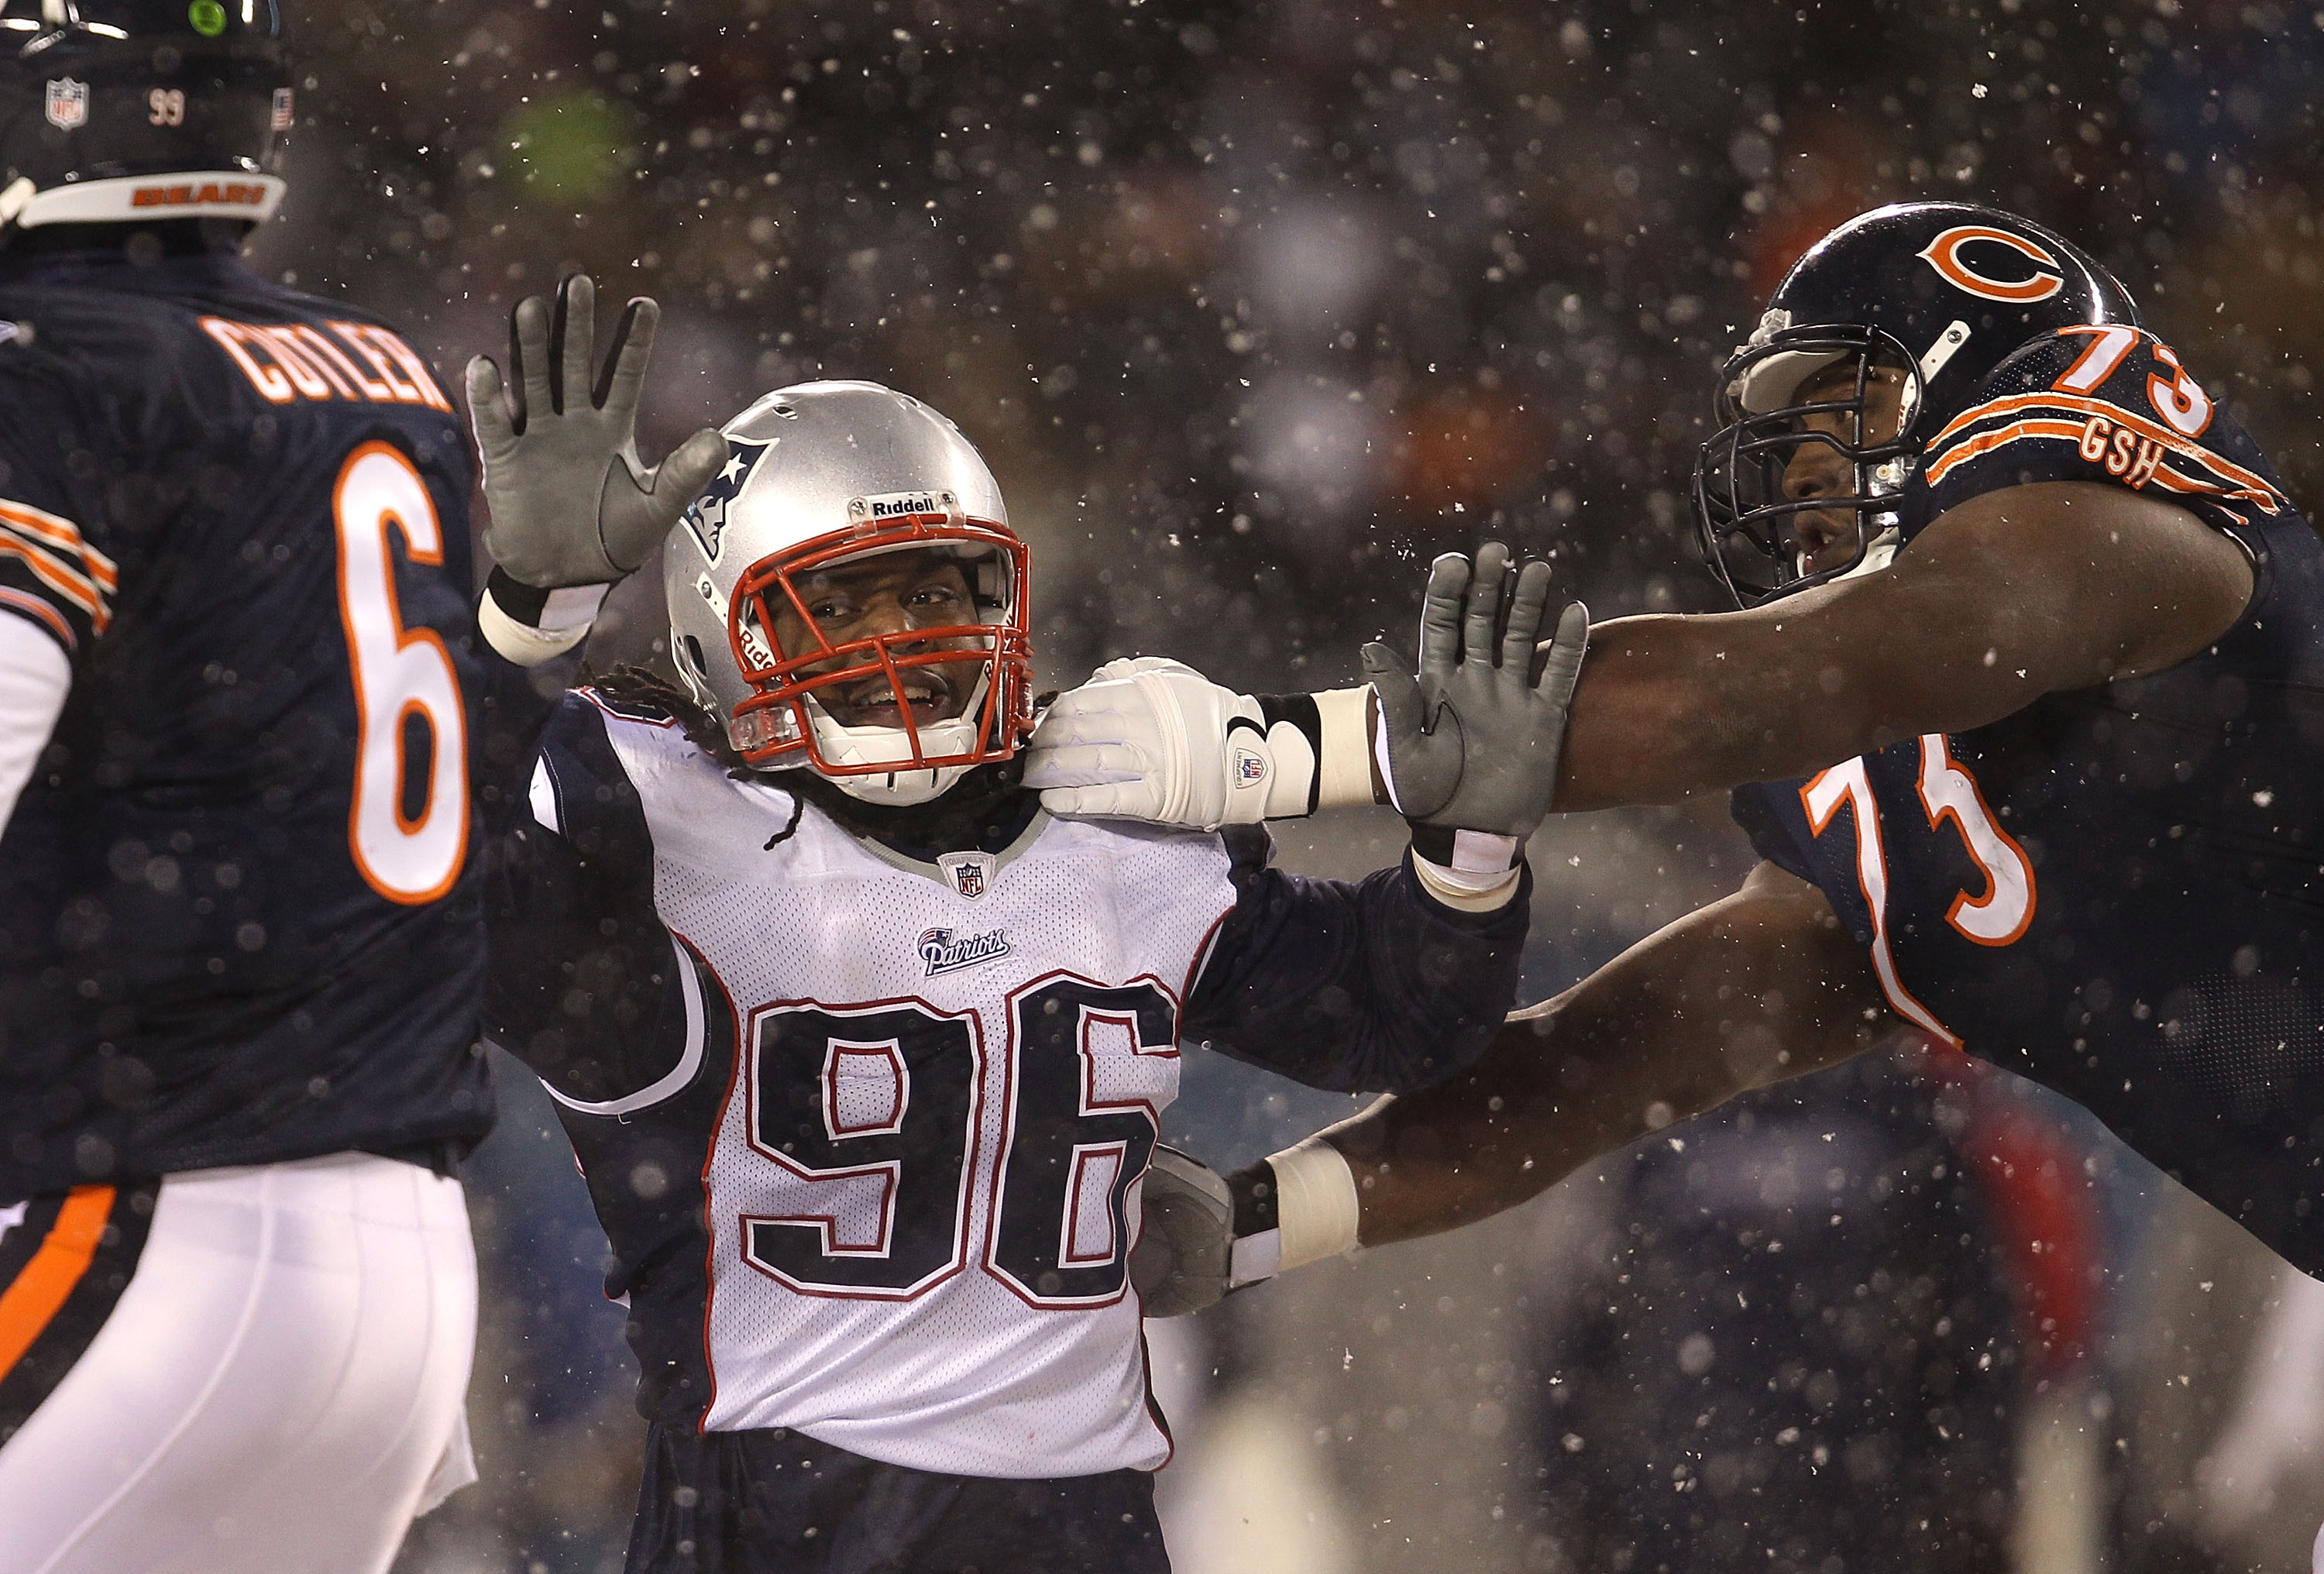 CHICAGO - DECEMBER 12: Jermaine Cunningham #96 of the New England Patriots rushes past J'Marcus Webb #73 of the Chicago Bears towards Jay Cutler #6 at Soldier Field on December 12, 2010 in Chicago, Illinois. The Patriots defeated the Bears 36-7. (Photo by